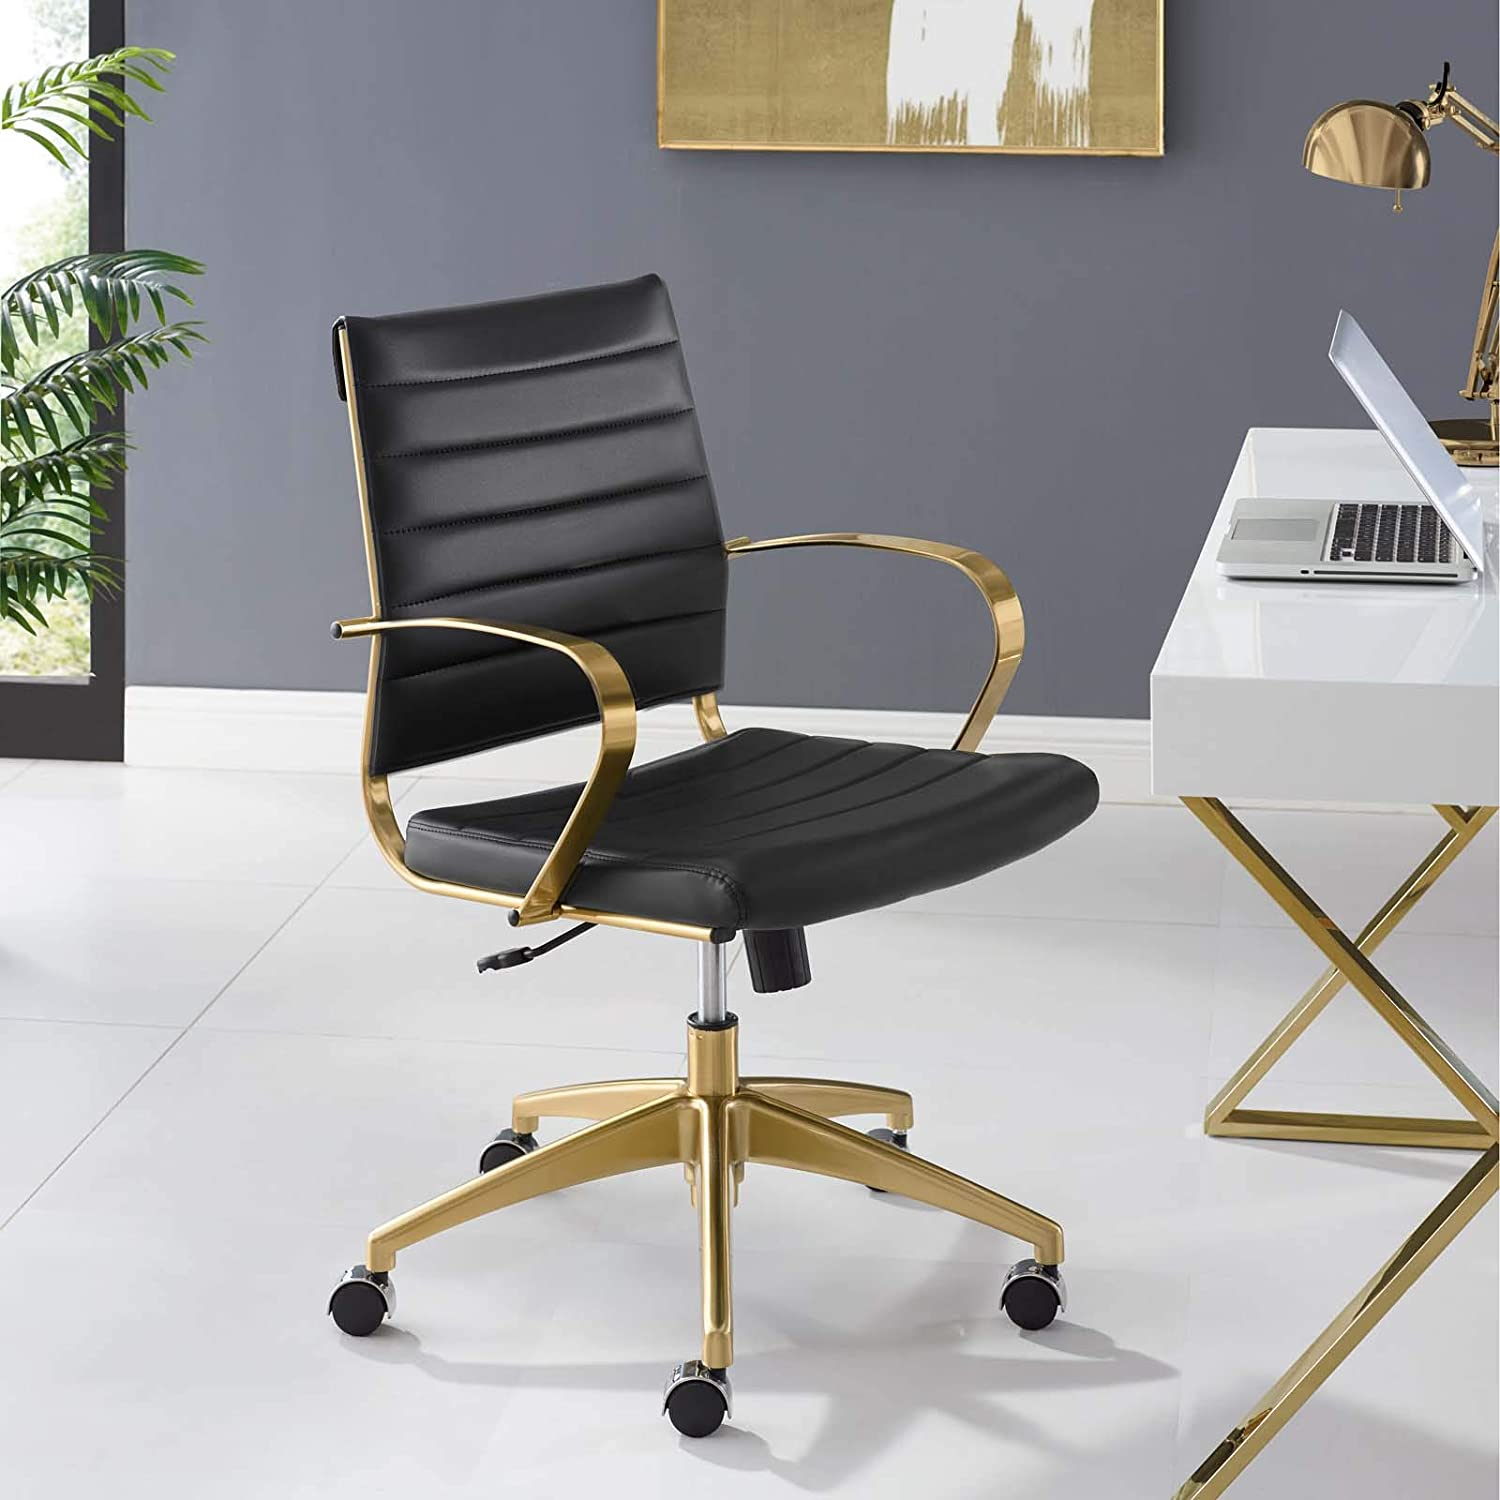 Modway Jive Gold Stainless Steel Executive Managerial Swivel Midback Office Chair